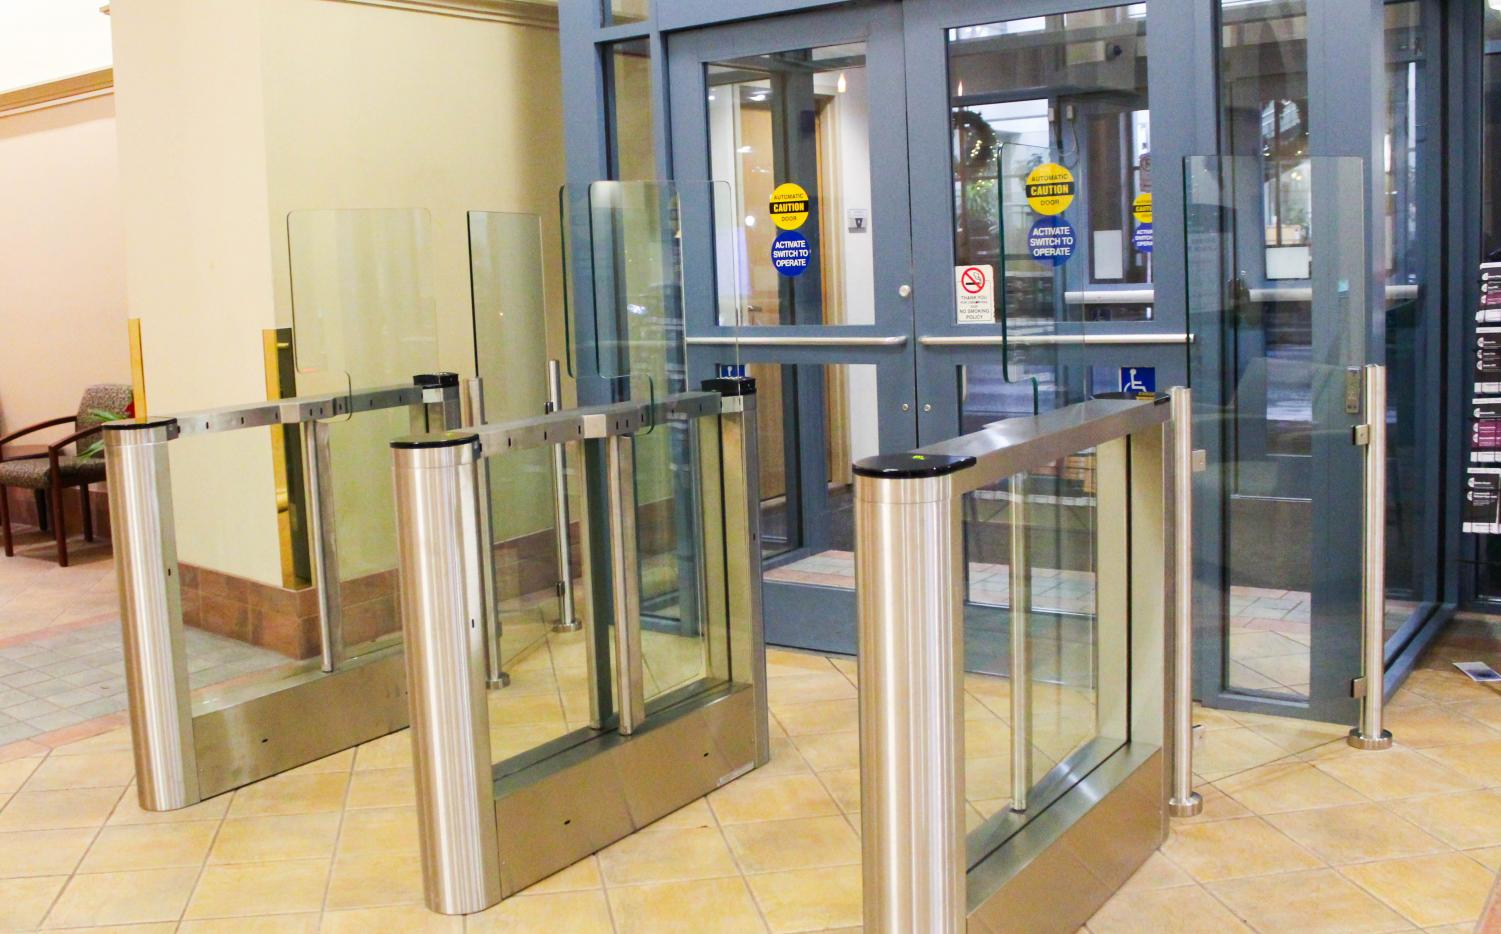 Turnstiles were installed at the Lawrence Hall entrances over Thanksgiving break.